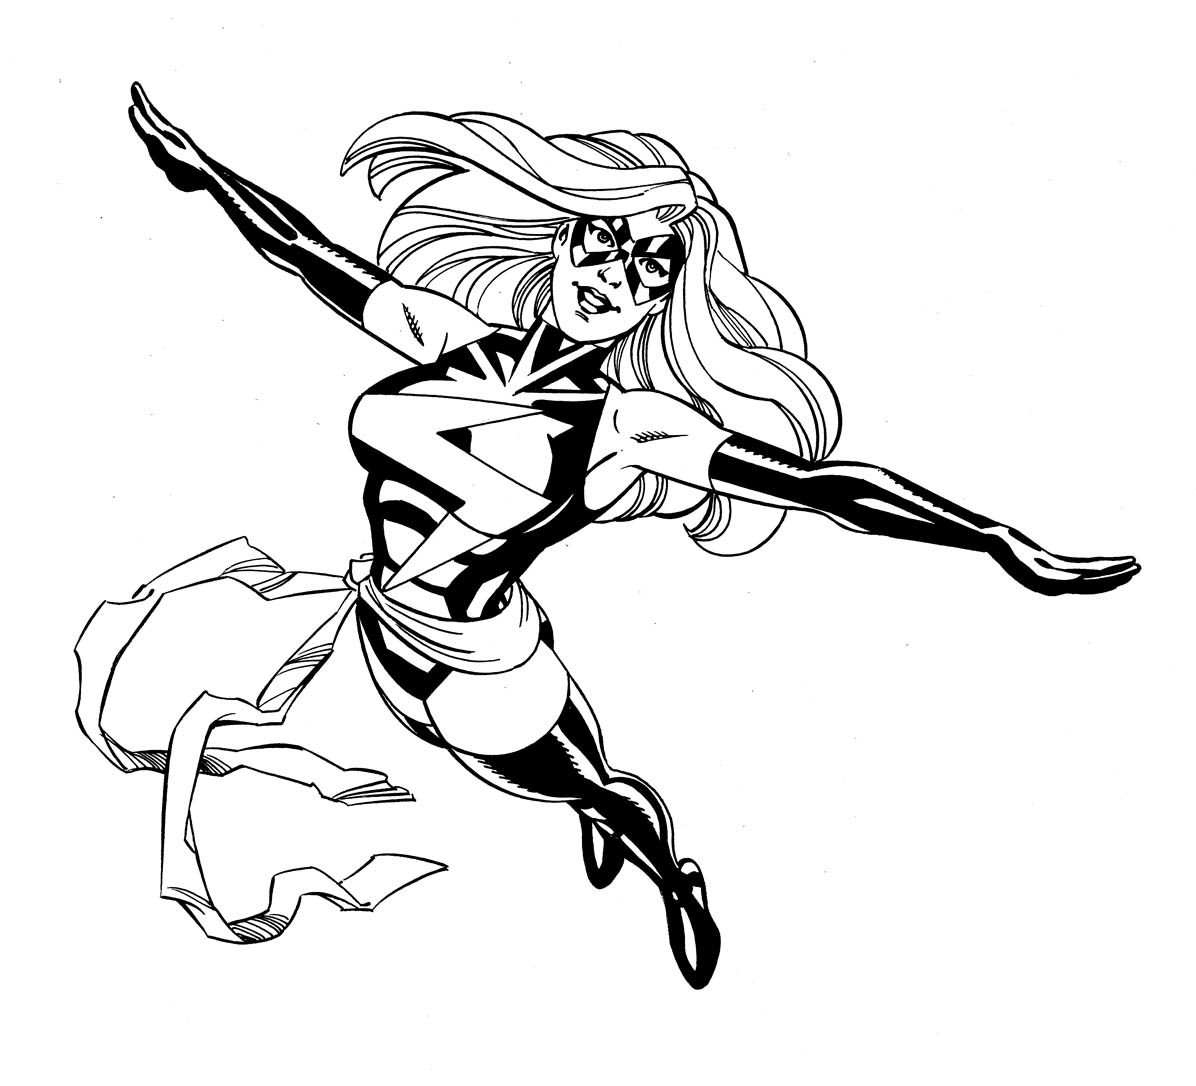 ms marvel coloring pages ms marvel by jamiefayx marvel coloring marvel ms marvel ms coloring marvel pages